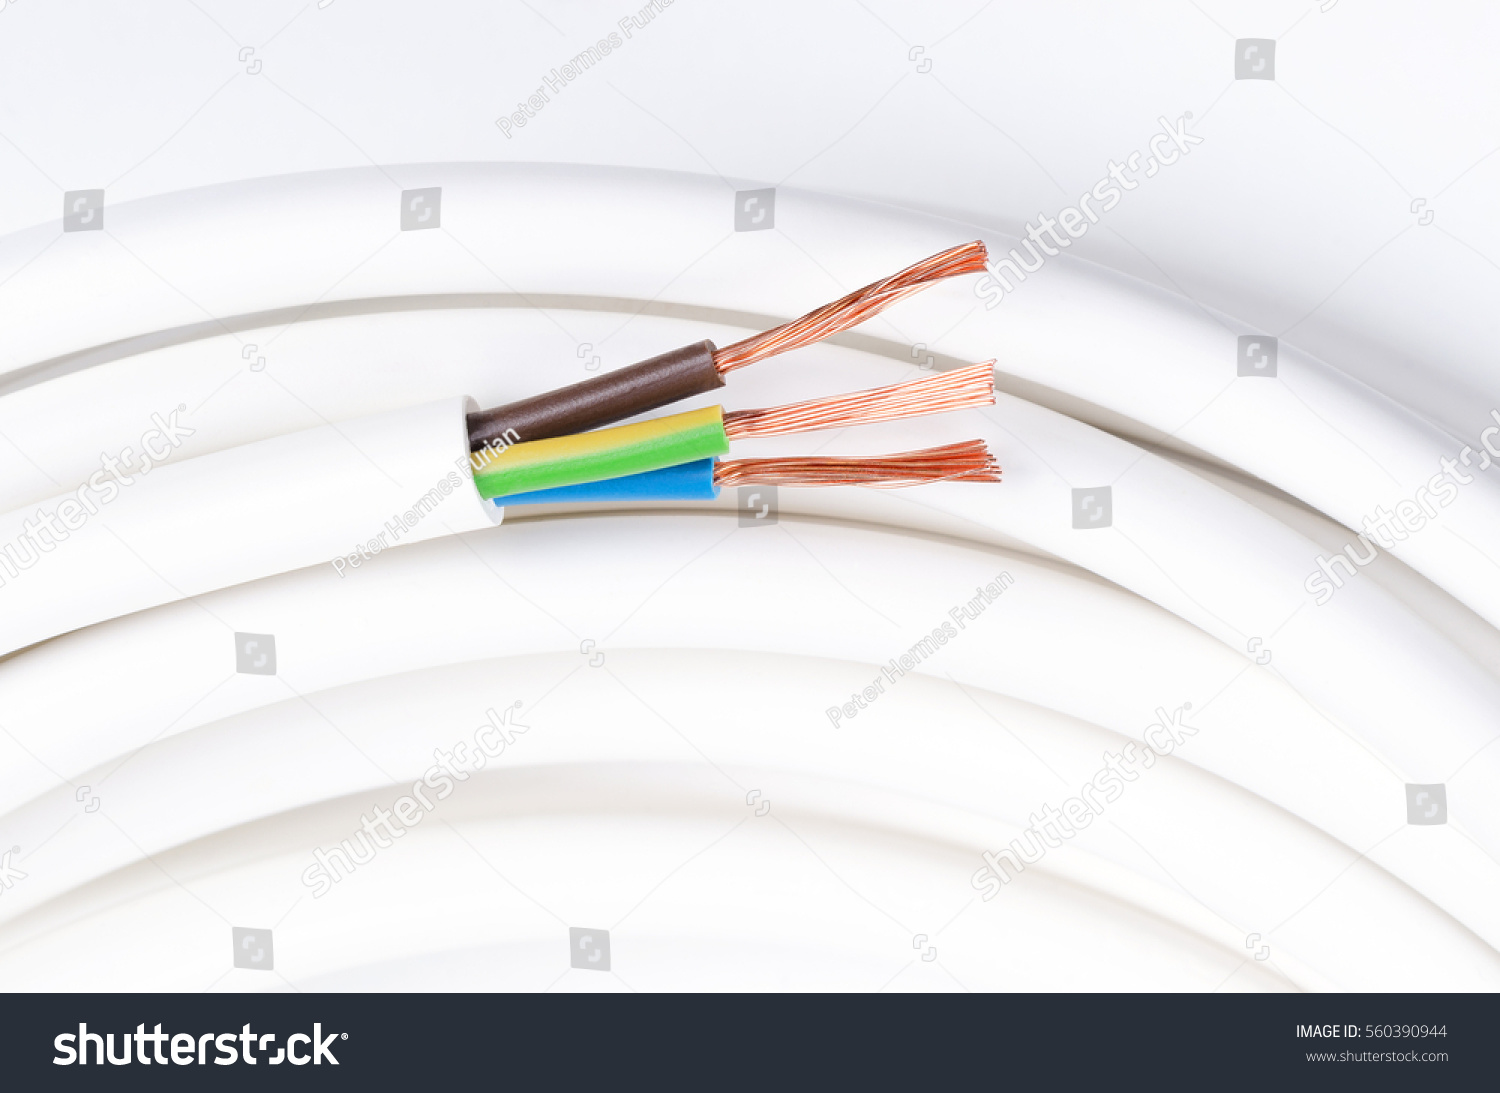 hight resolution of electrical cable with three insulated conductors horizontal power cable cross section cable